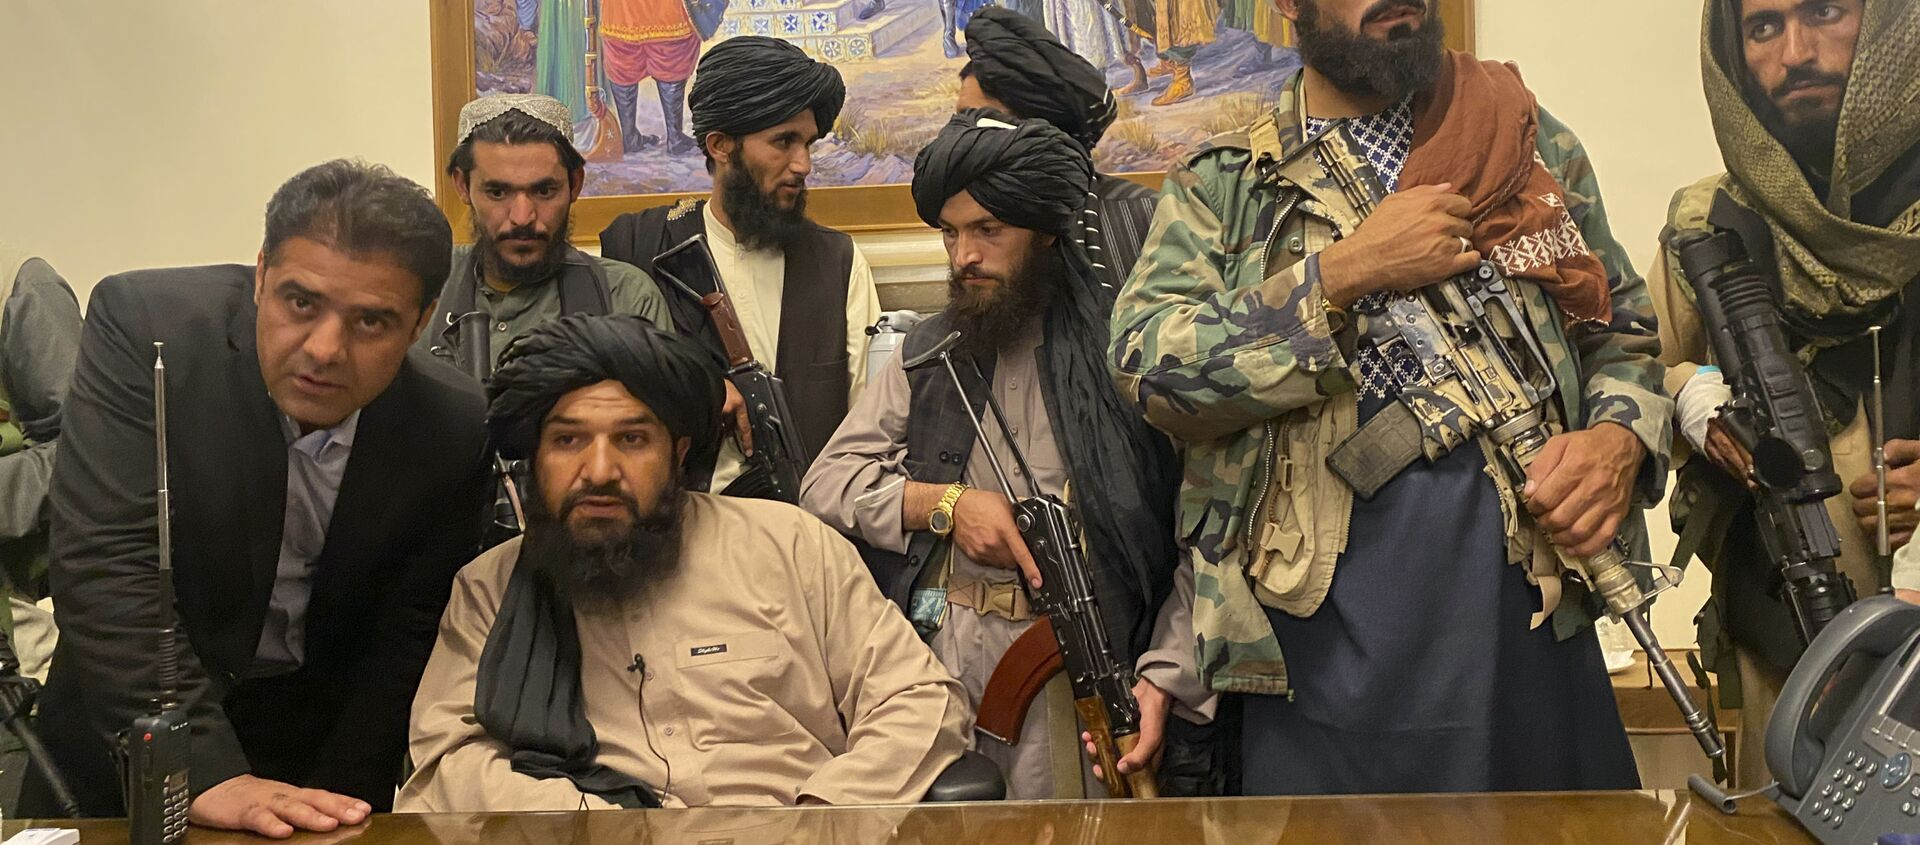 Taliban fighters take control of Afghan presidential palace after the Afghan President Ashraf Ghani fled the country, in Kabul, Afghanistan, Sunday, Aug. 15, 2021. - Sputnik International, 1920